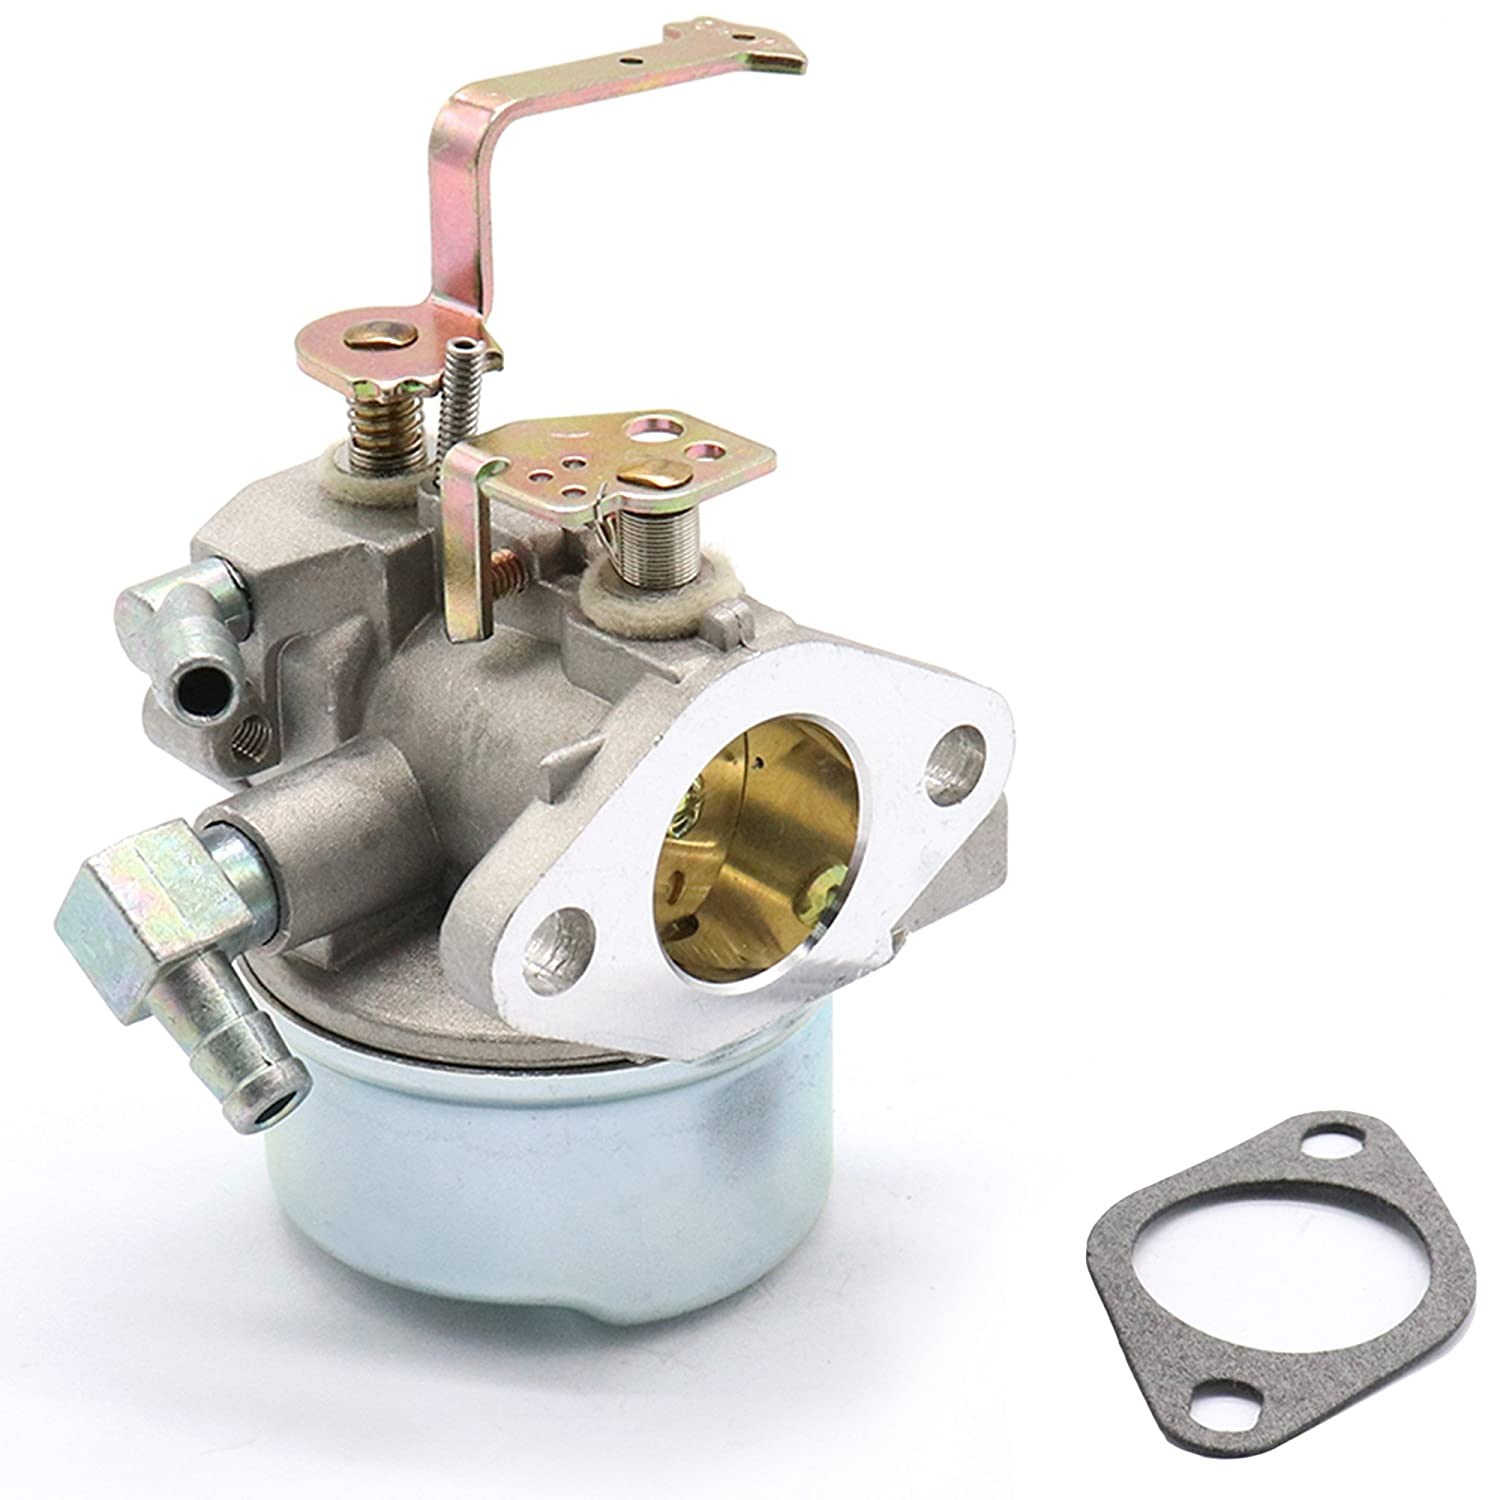 New Carburetor Carb for Tecumseh HM80 HM100 for 640152A 640023 640051 640140 640152 with gasket IZTOR